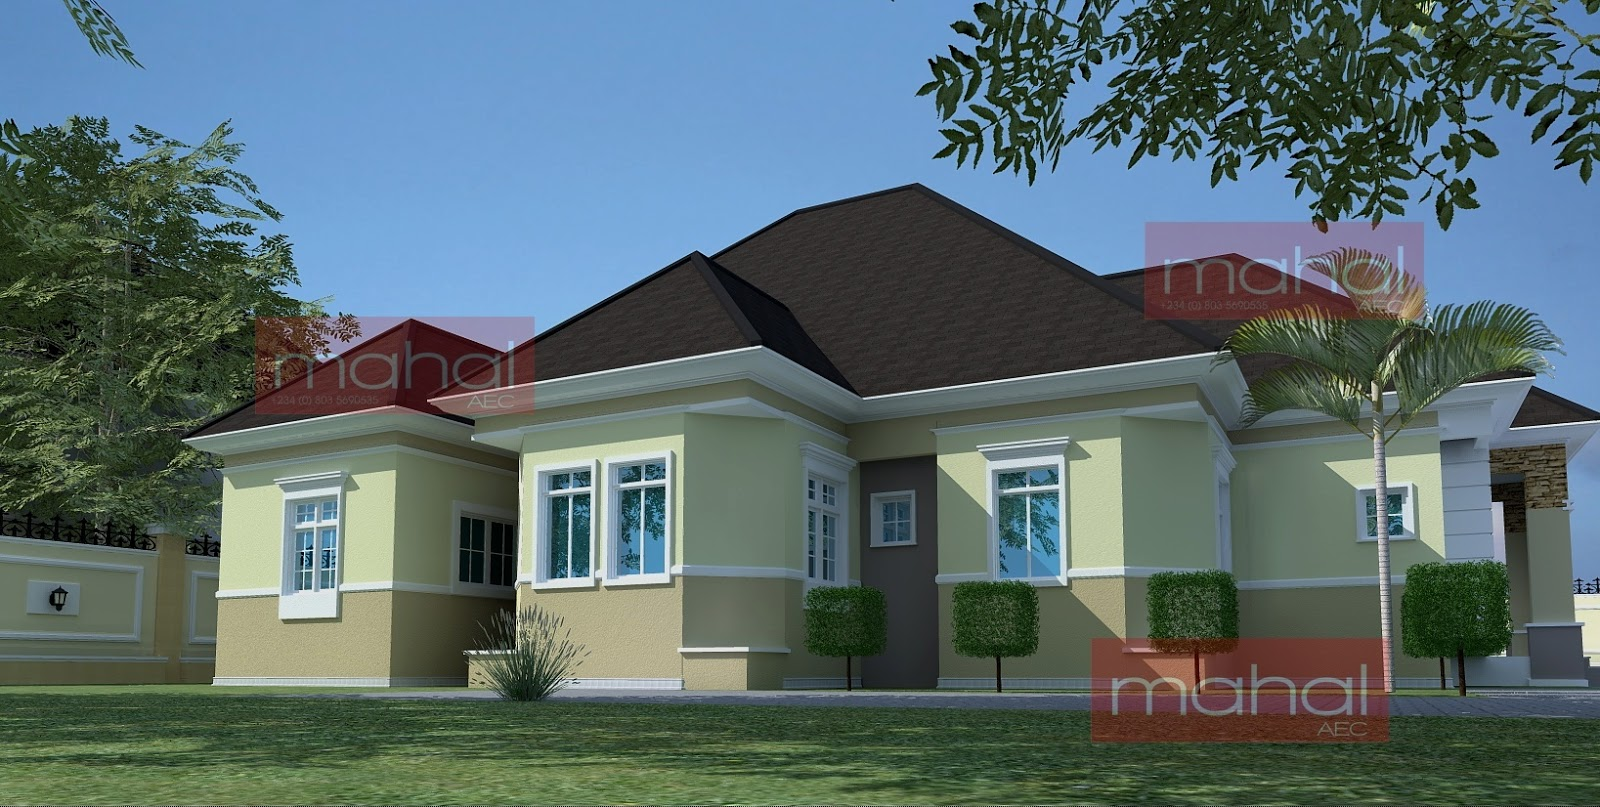 Bungalow House Plan D on bungalow house plans with basement, bungalow narrow lot house plan, bungalow floor plans, bungalow house designs, bungalow house plans french, bungalow house plans with attached garage, bungalow plan 3 bed room, bungalow house plans vintage, bungalow house plans beach, bungalow house plans with balcony, bungalow house plans in the philippines,